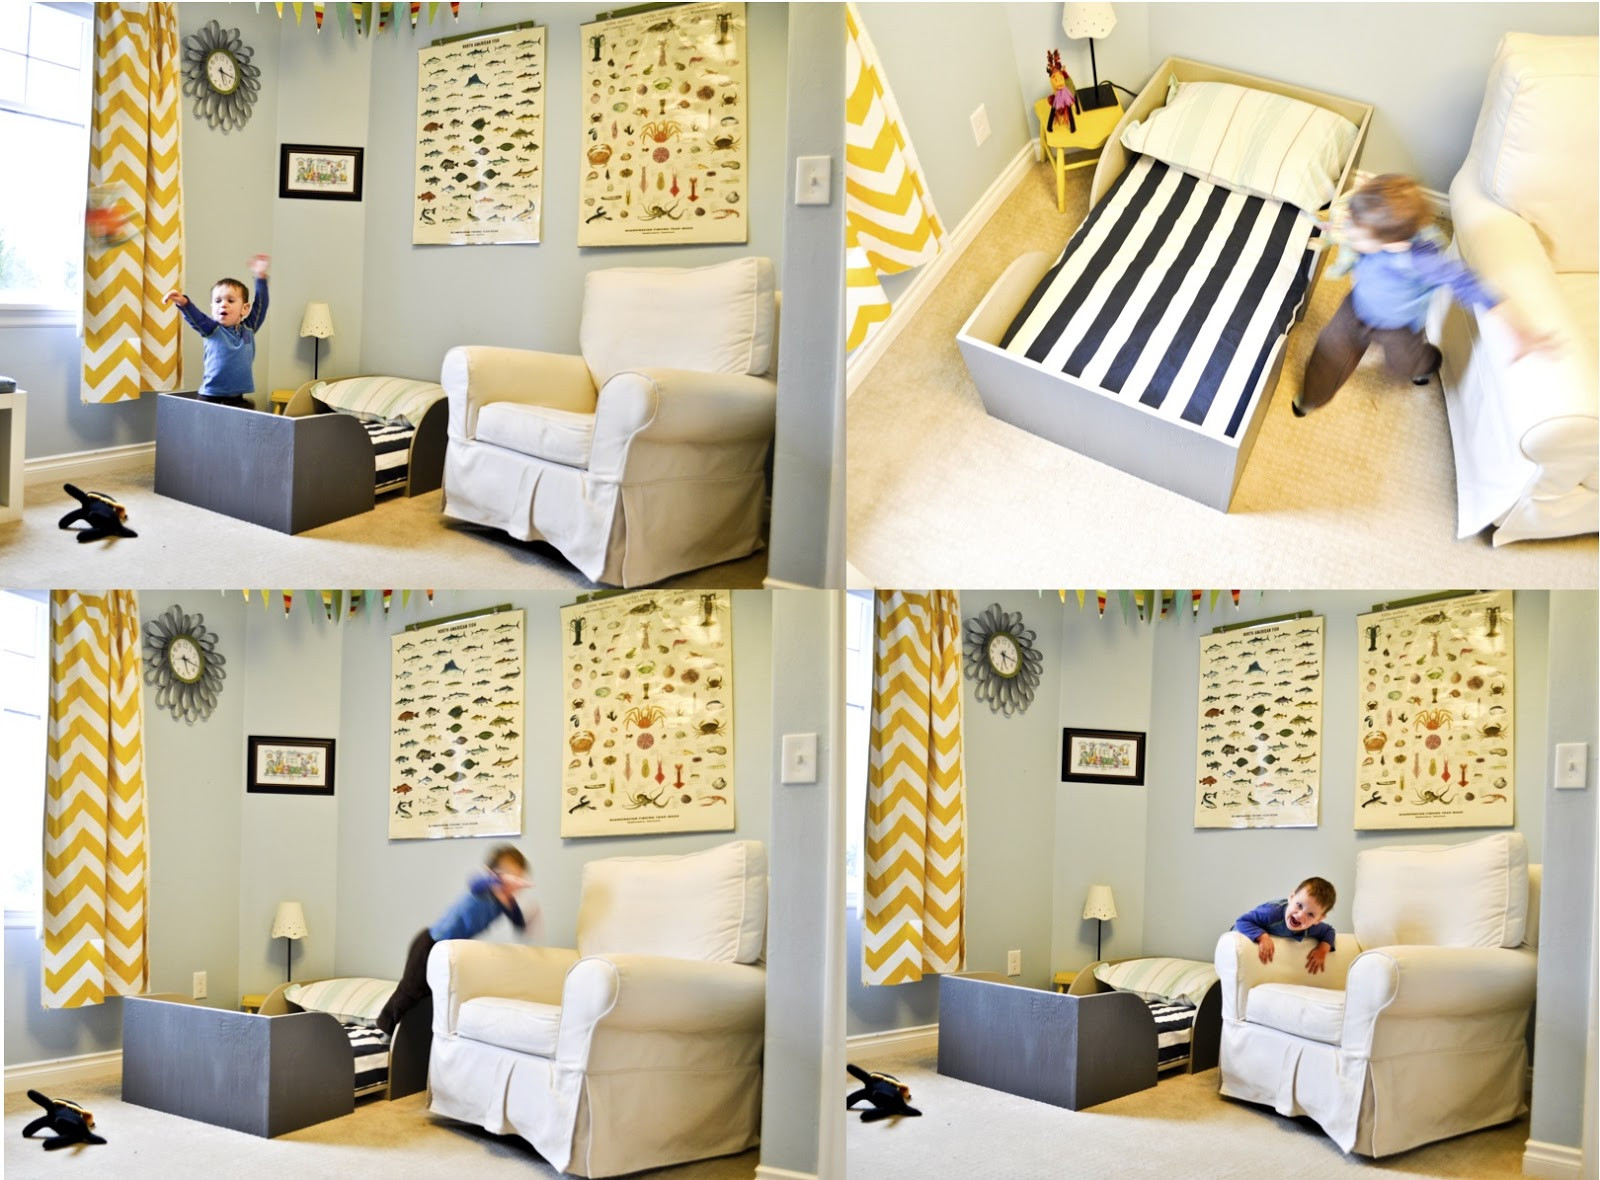 Best ideas about DIY Toddler Bed . Save or Pin Chris and Sonja The Sweet Seattle Life DIY Toddler Bed Now.